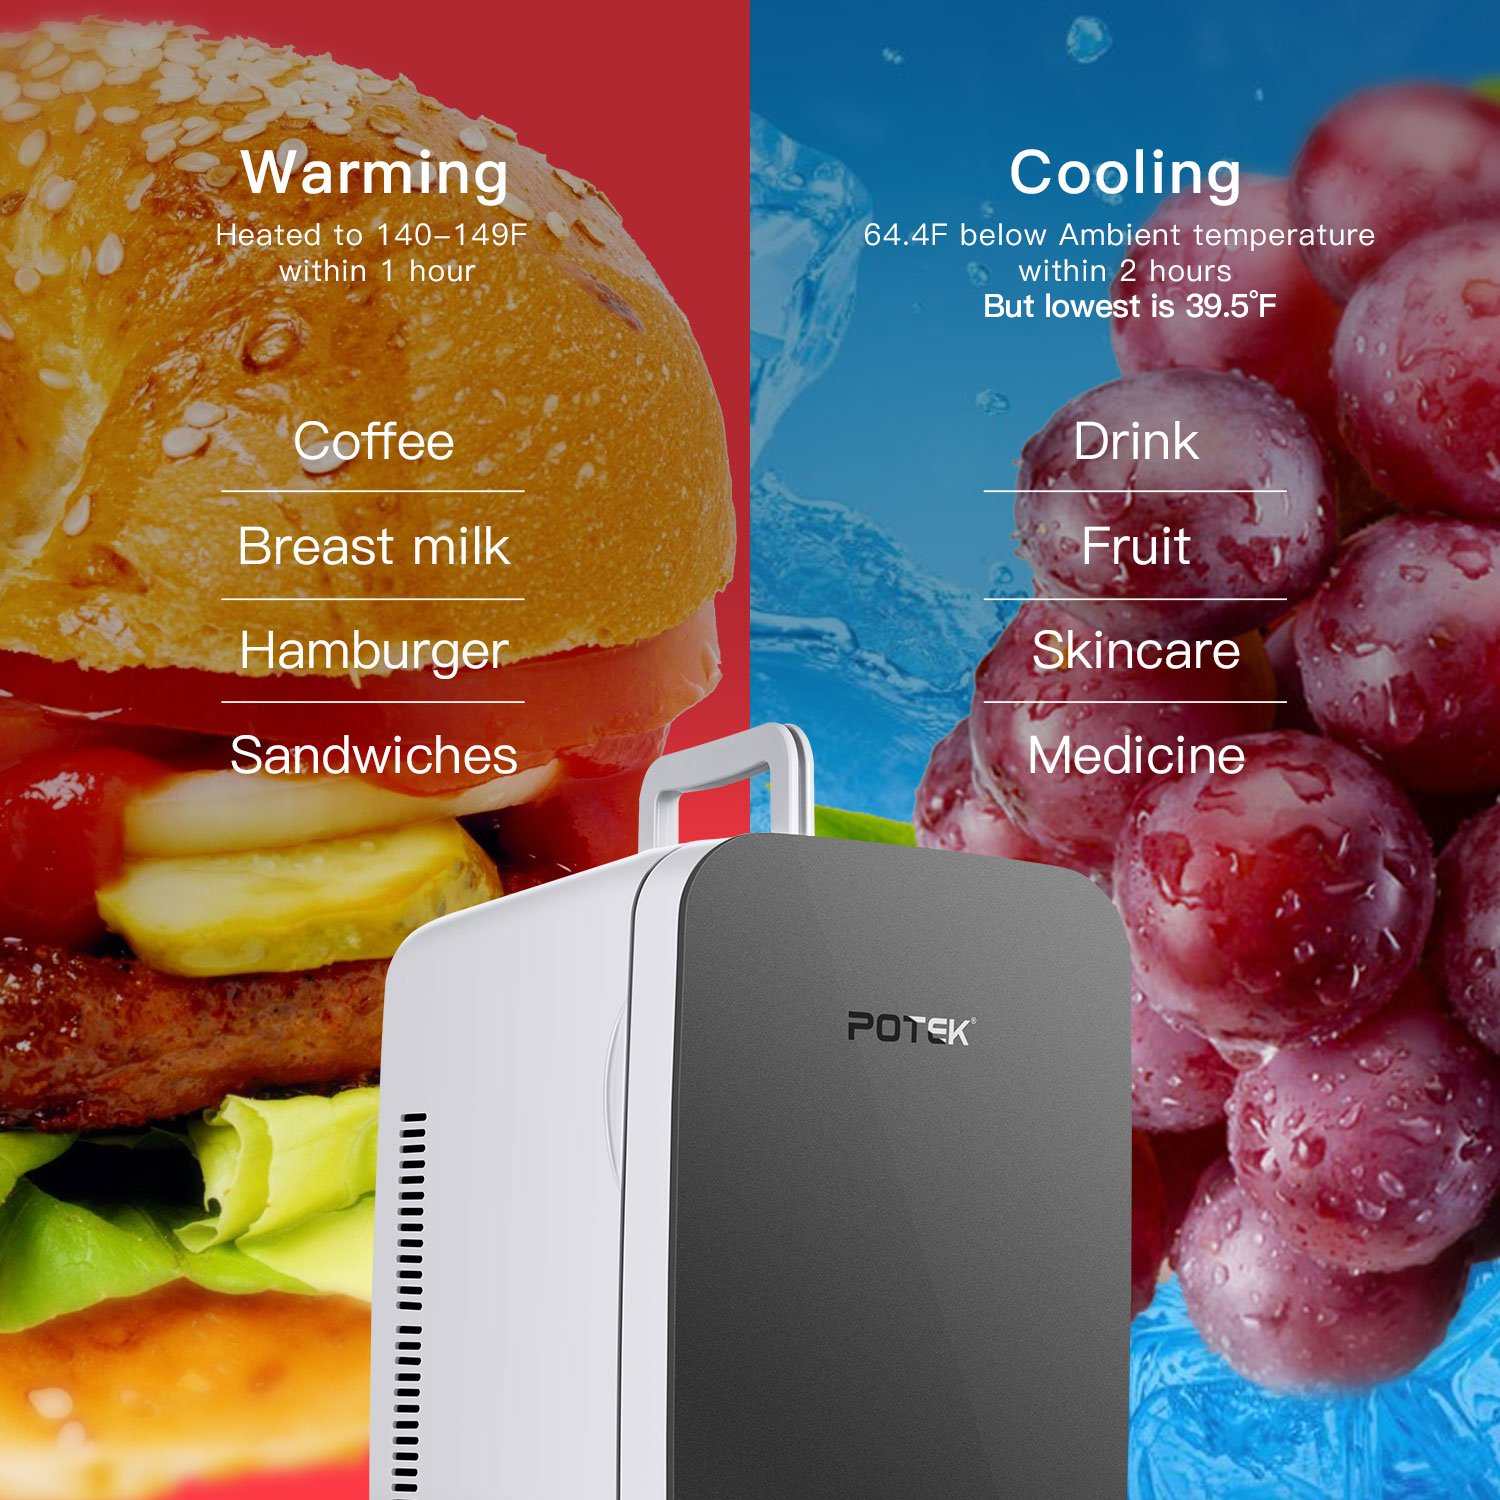 Potek 15 Liter/18 Can Portable AC/DC Mini Fridge Thermoelectric Cooler and Warmer for Home and Car by POTEK (Image #4)